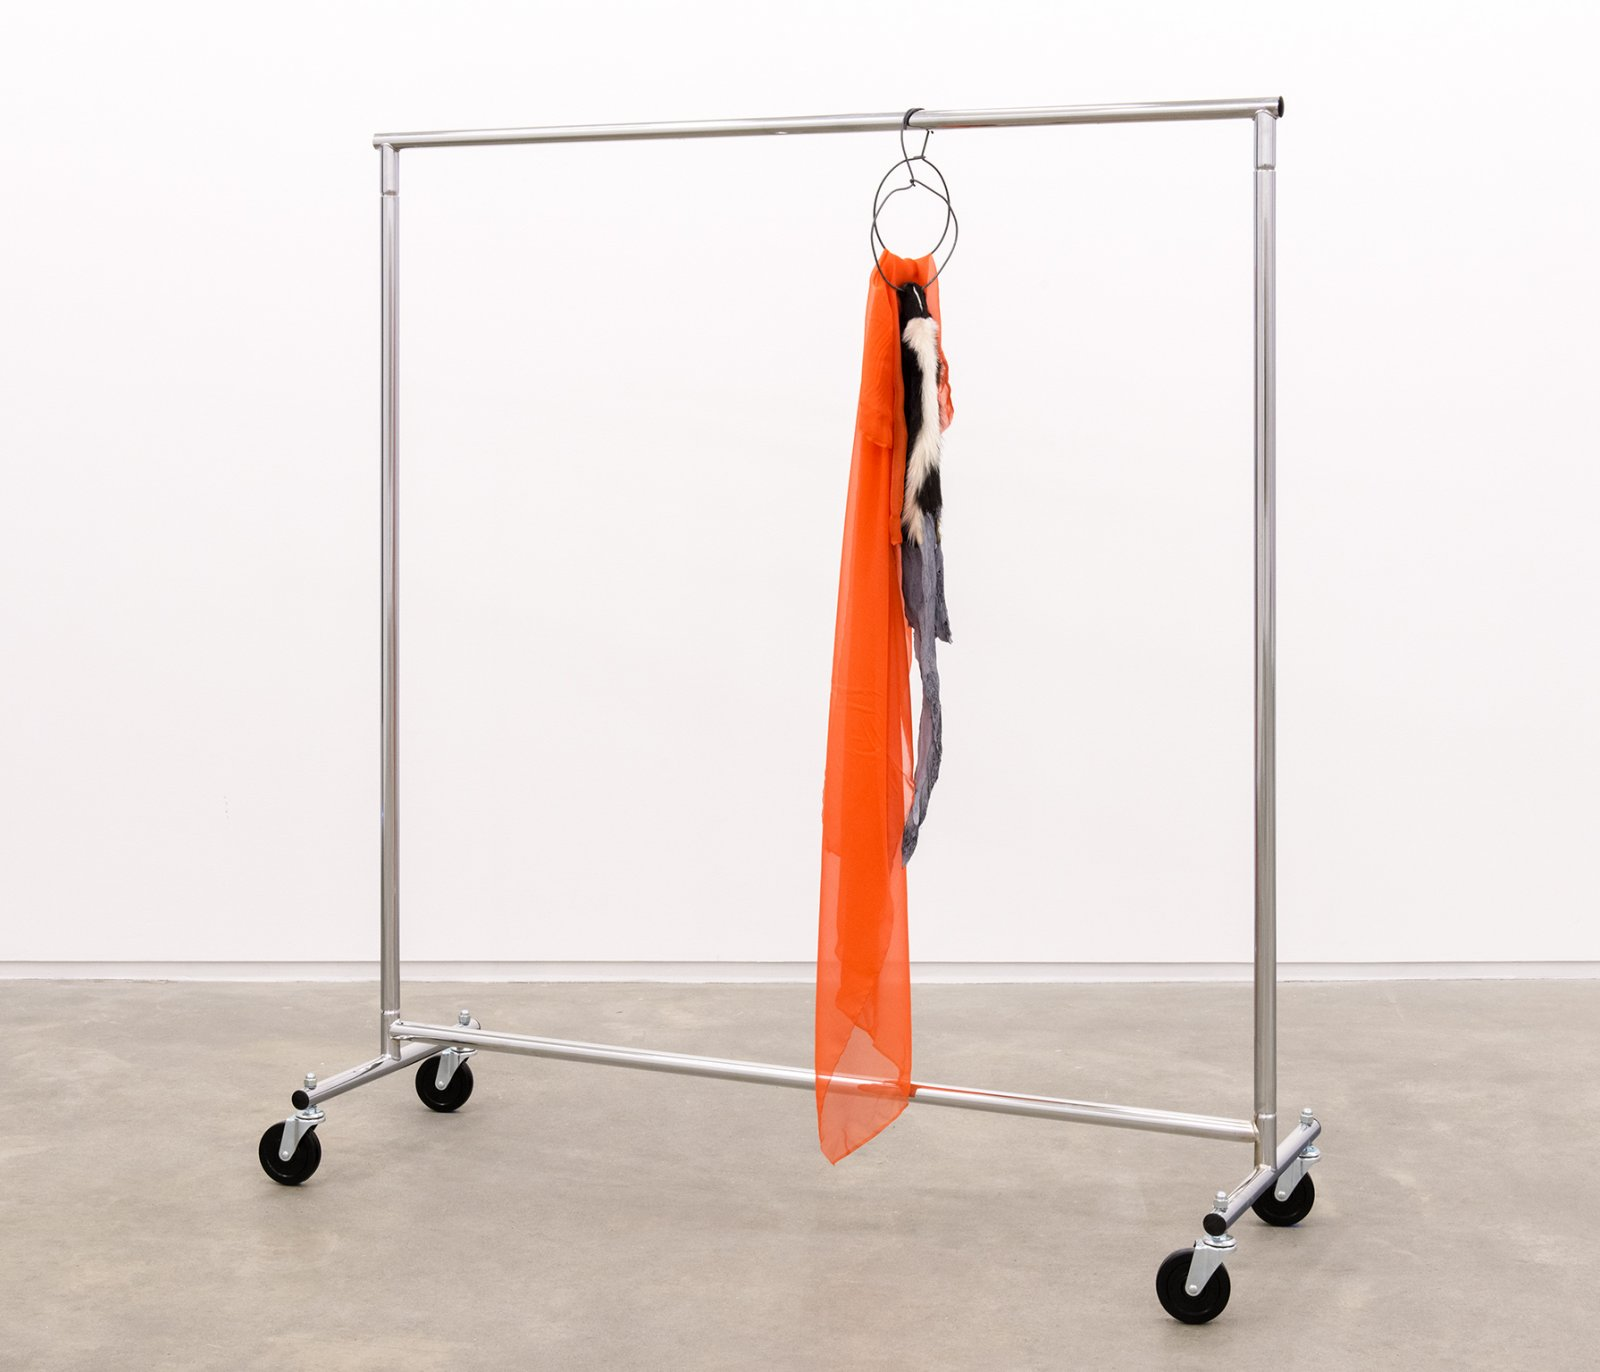 Duane Linklater, The most beautiful thing in the world, 2014, skunk fur, paint, garment rack, hangers, fabric, 66 x 60 x 20 in. (168 x 151 x 52 cm) by Duane Linklater